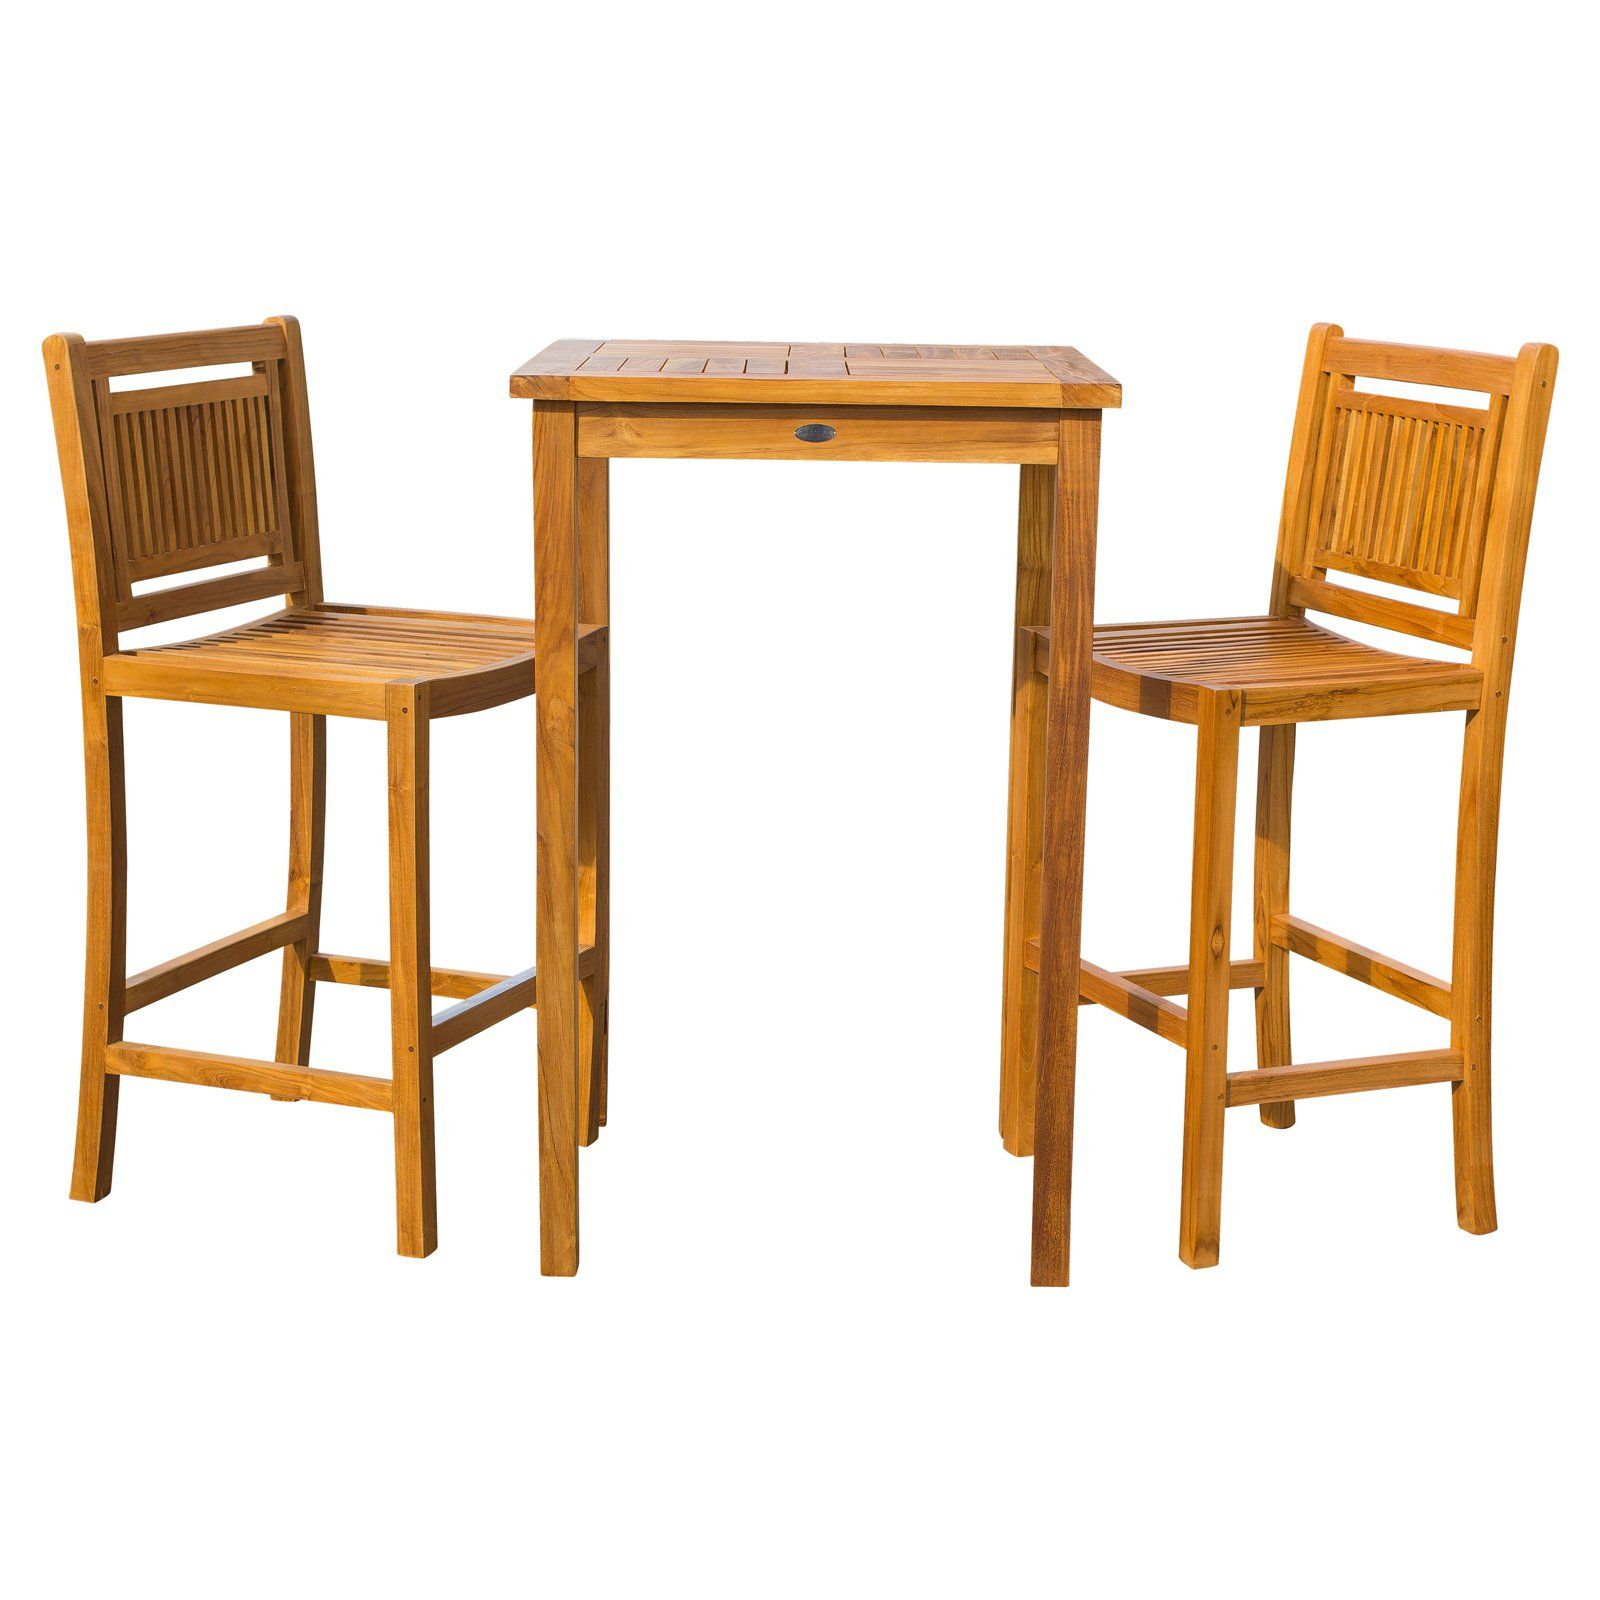 Chic Teak Maldives Bistro Set